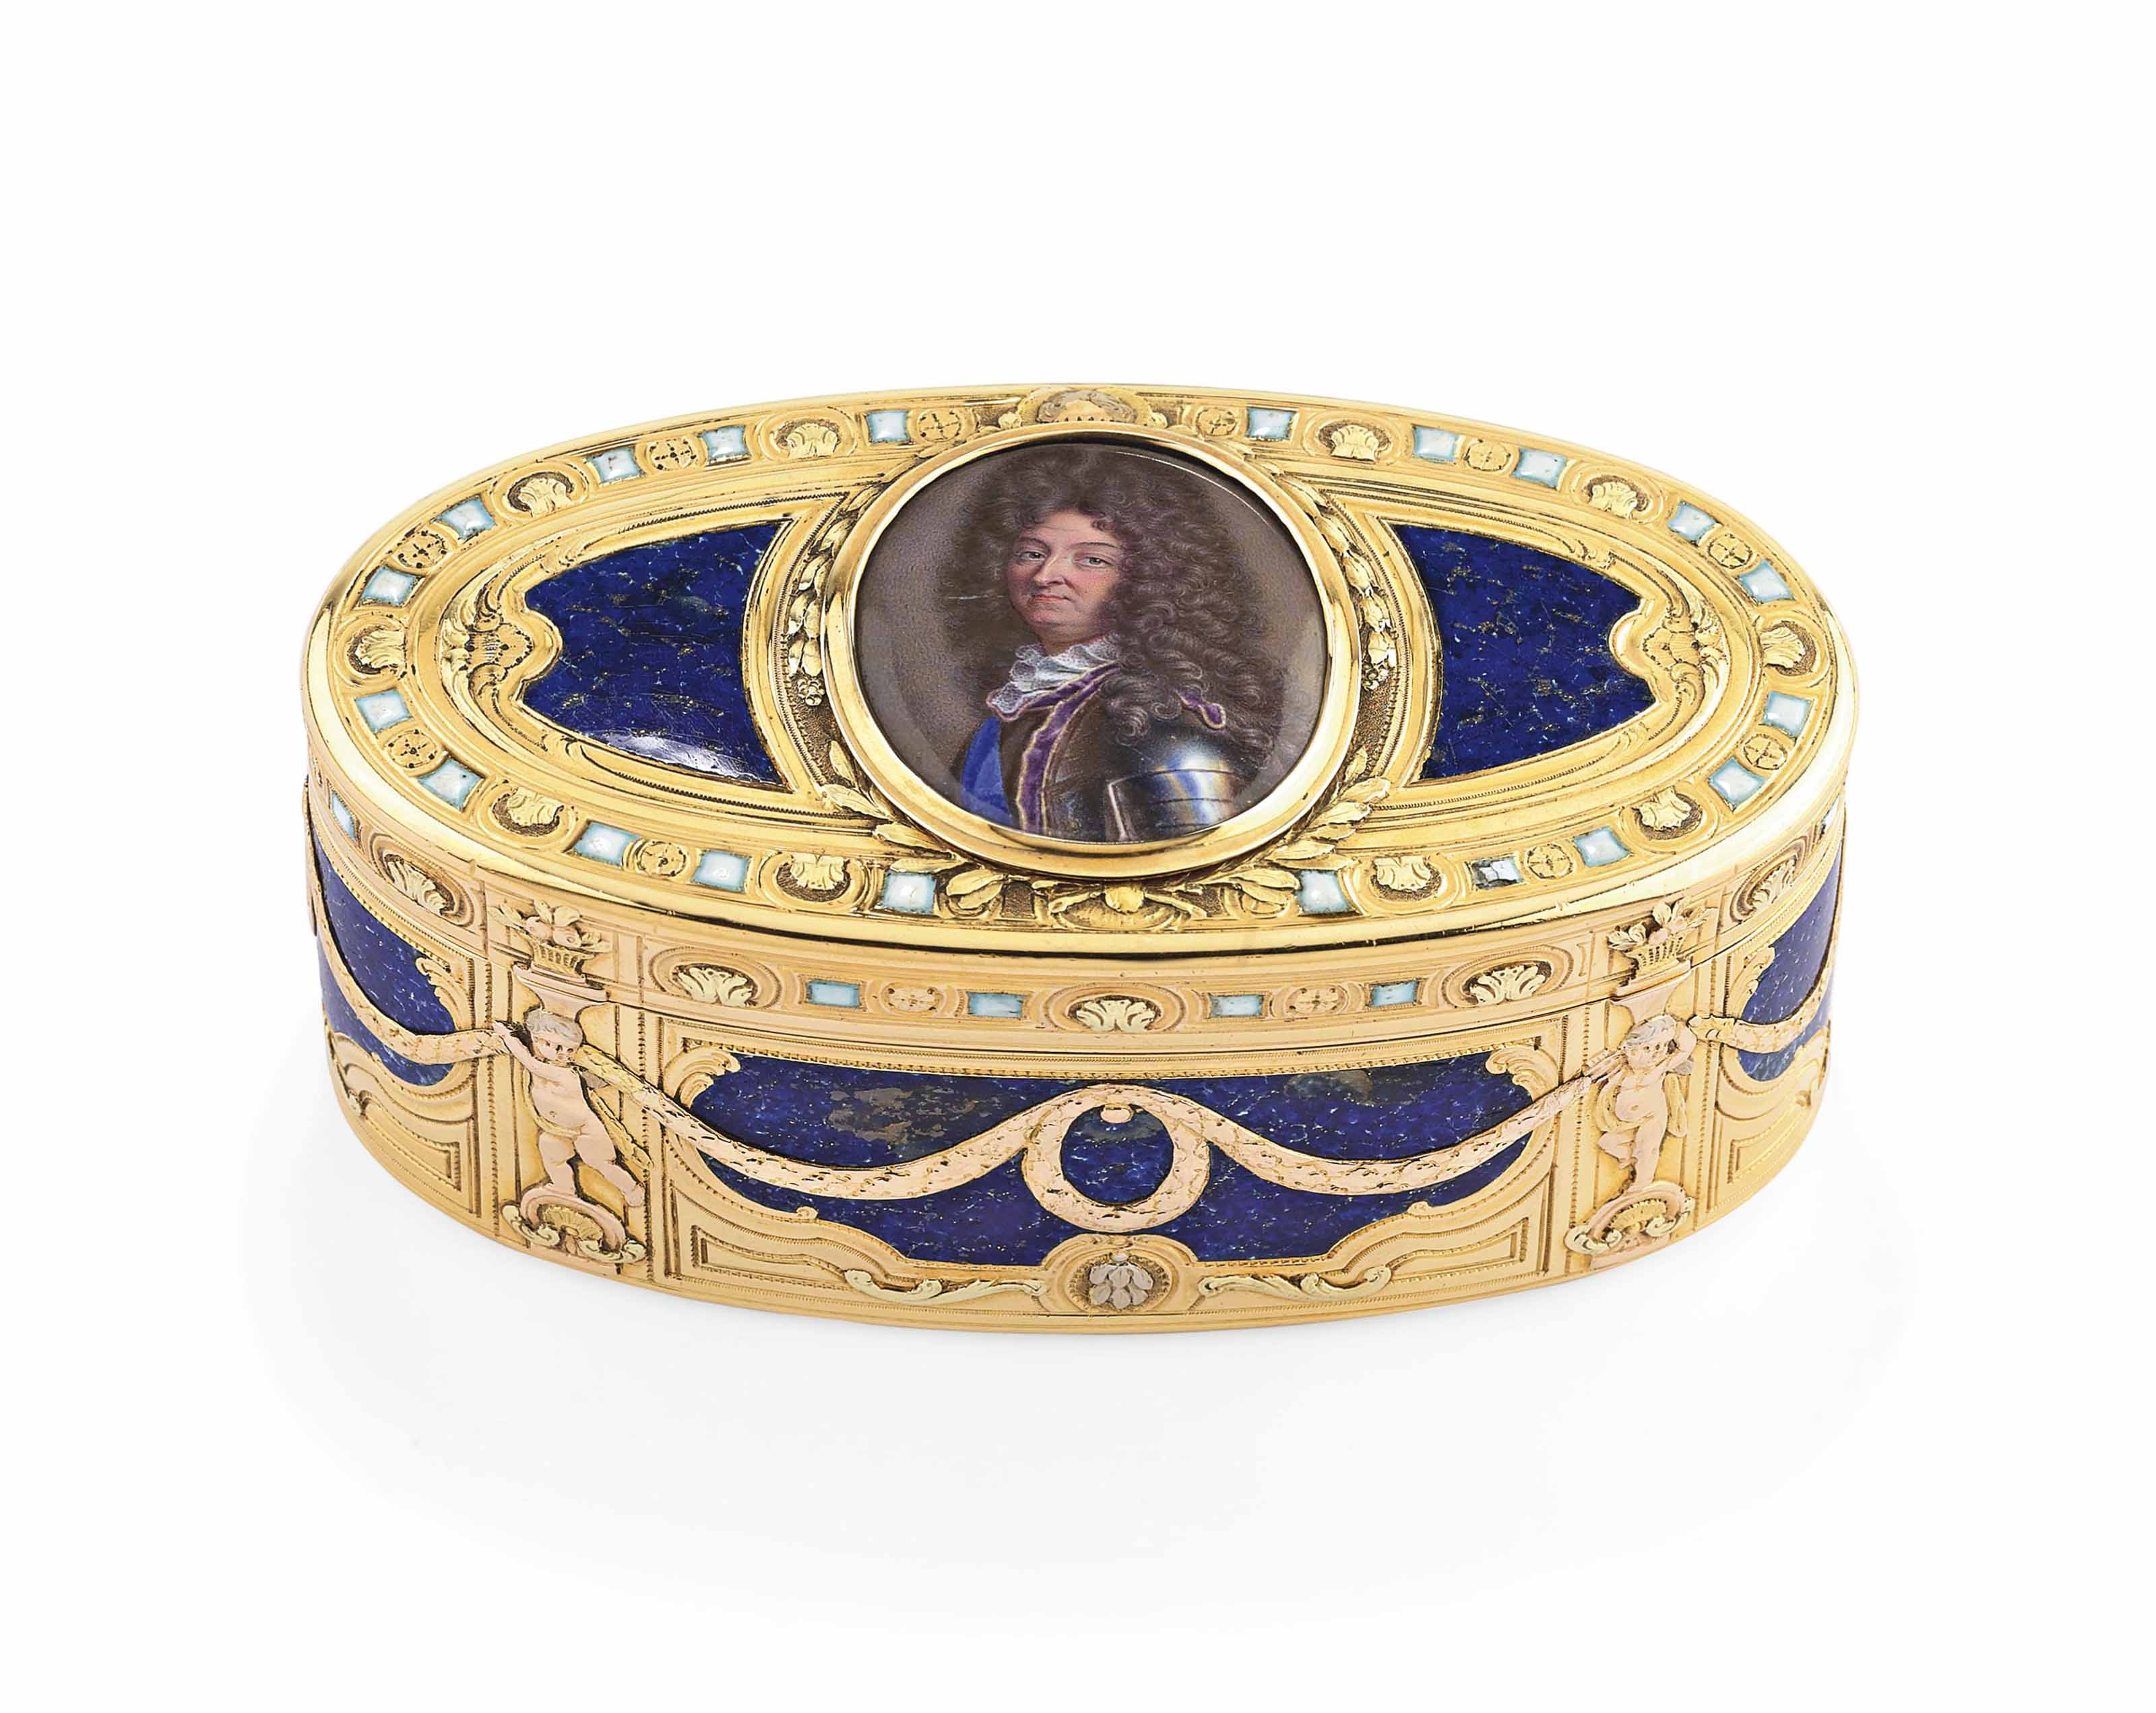 A LOUIS XV ENAMELLED VARI-COLOUR GOLD SNUFF-BOX SET WITH A MINIATURE